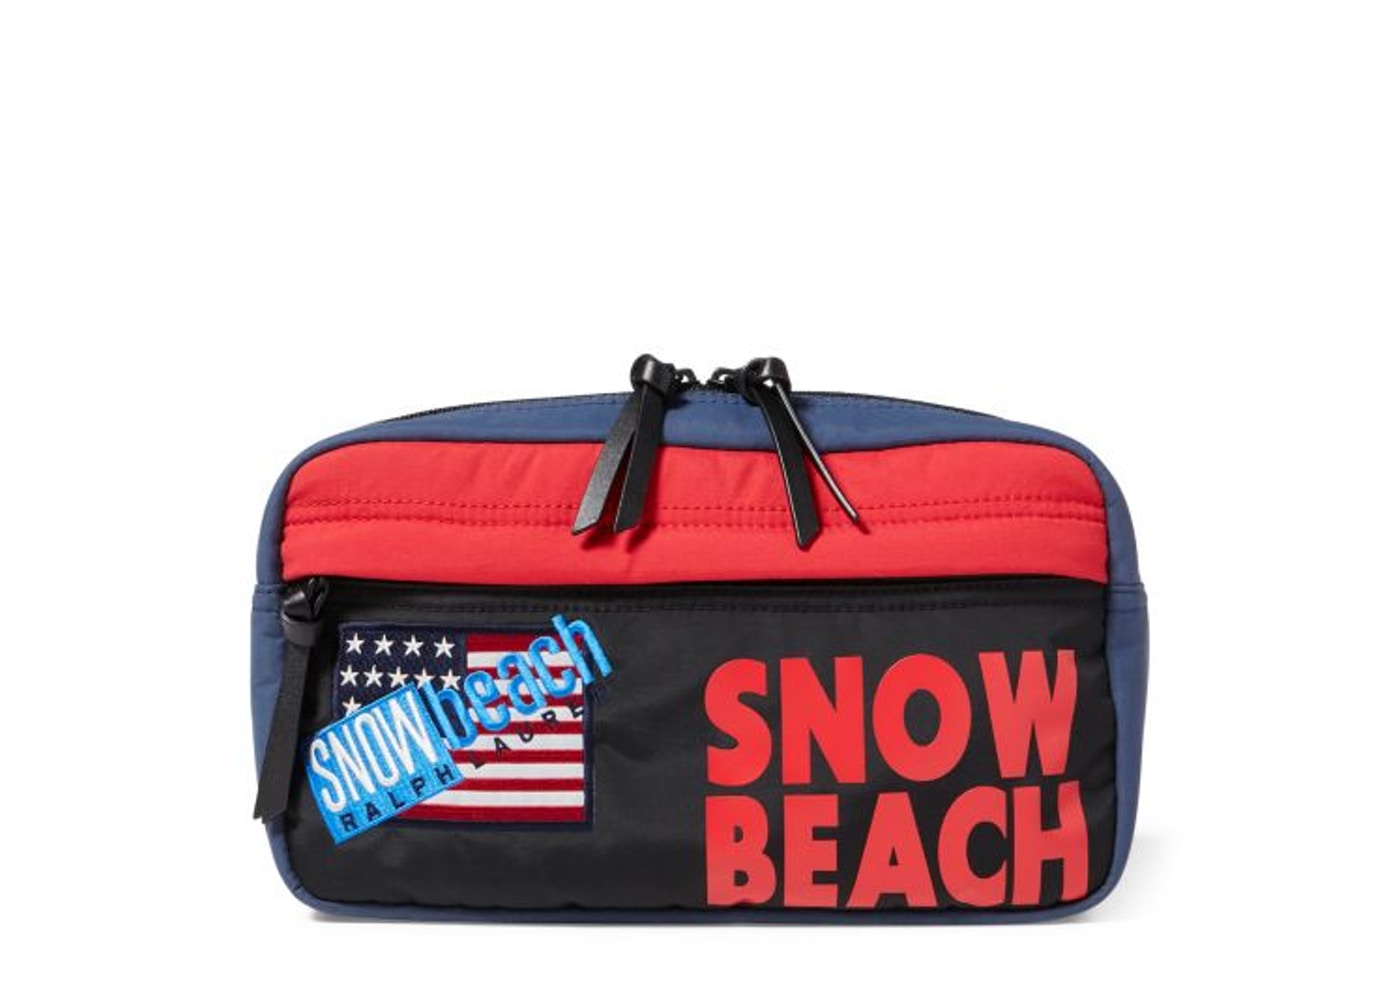 267760e12d Polo Ralph Lauren Snow Beach Waist Pack Multi. Snow Beach Waist